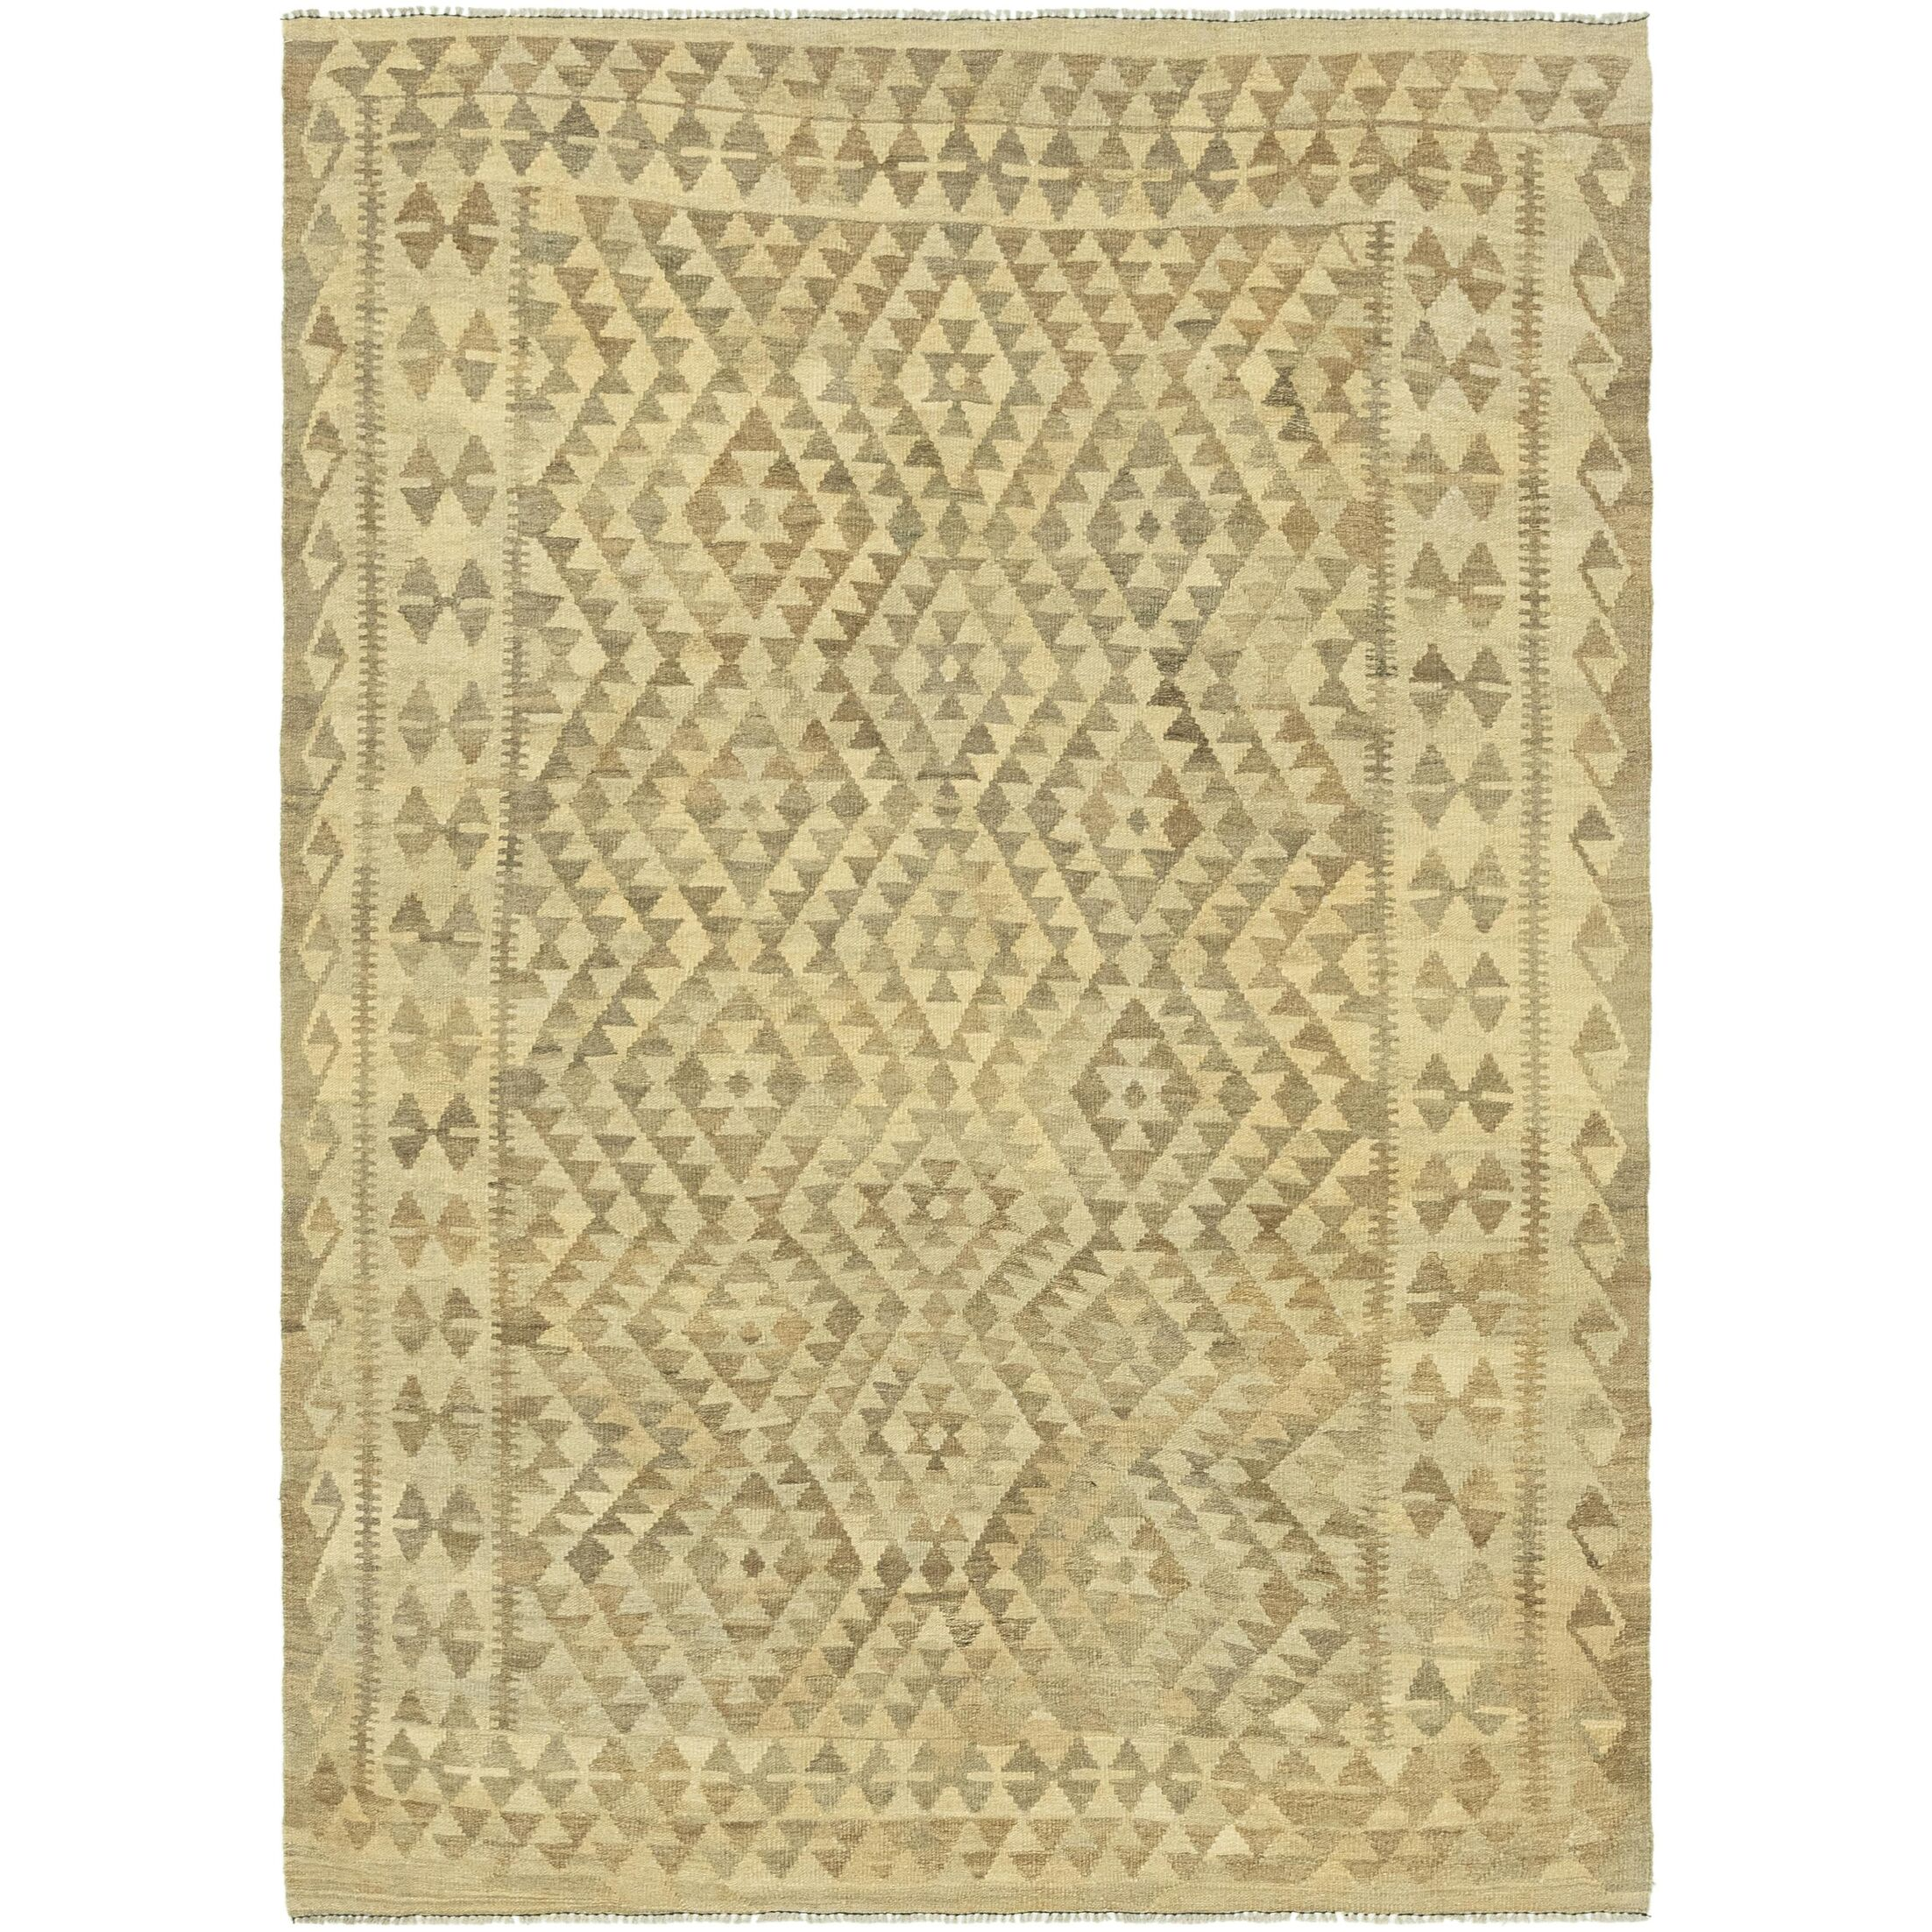 One-of-a-Kind Lorain Hand-Knotted Wool 5'8